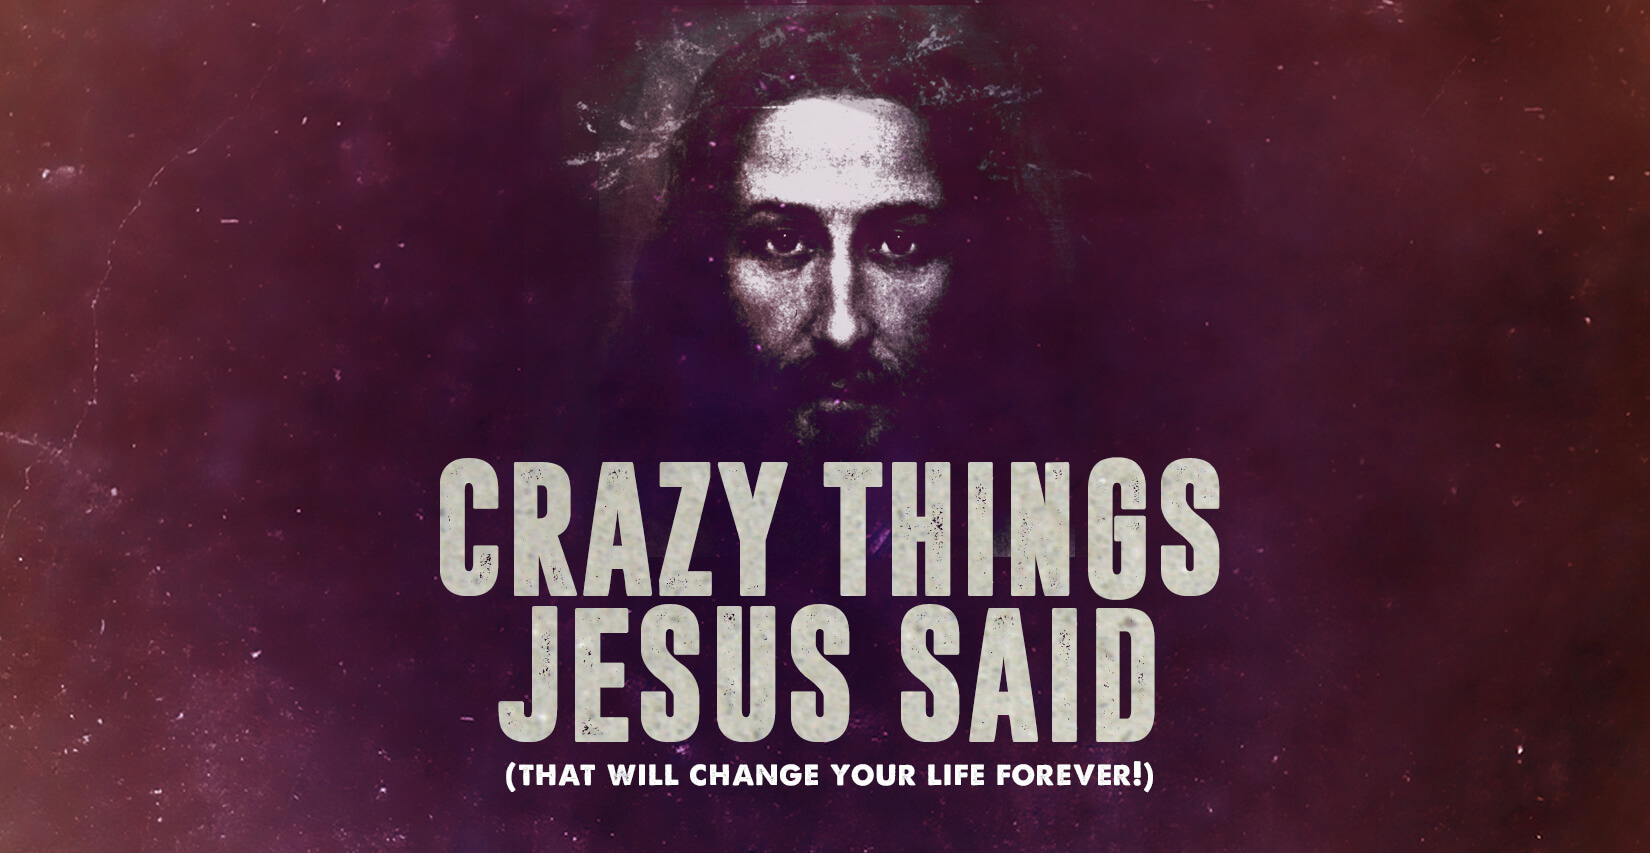 120 Things Jesus Said That You Wish He Hadn't